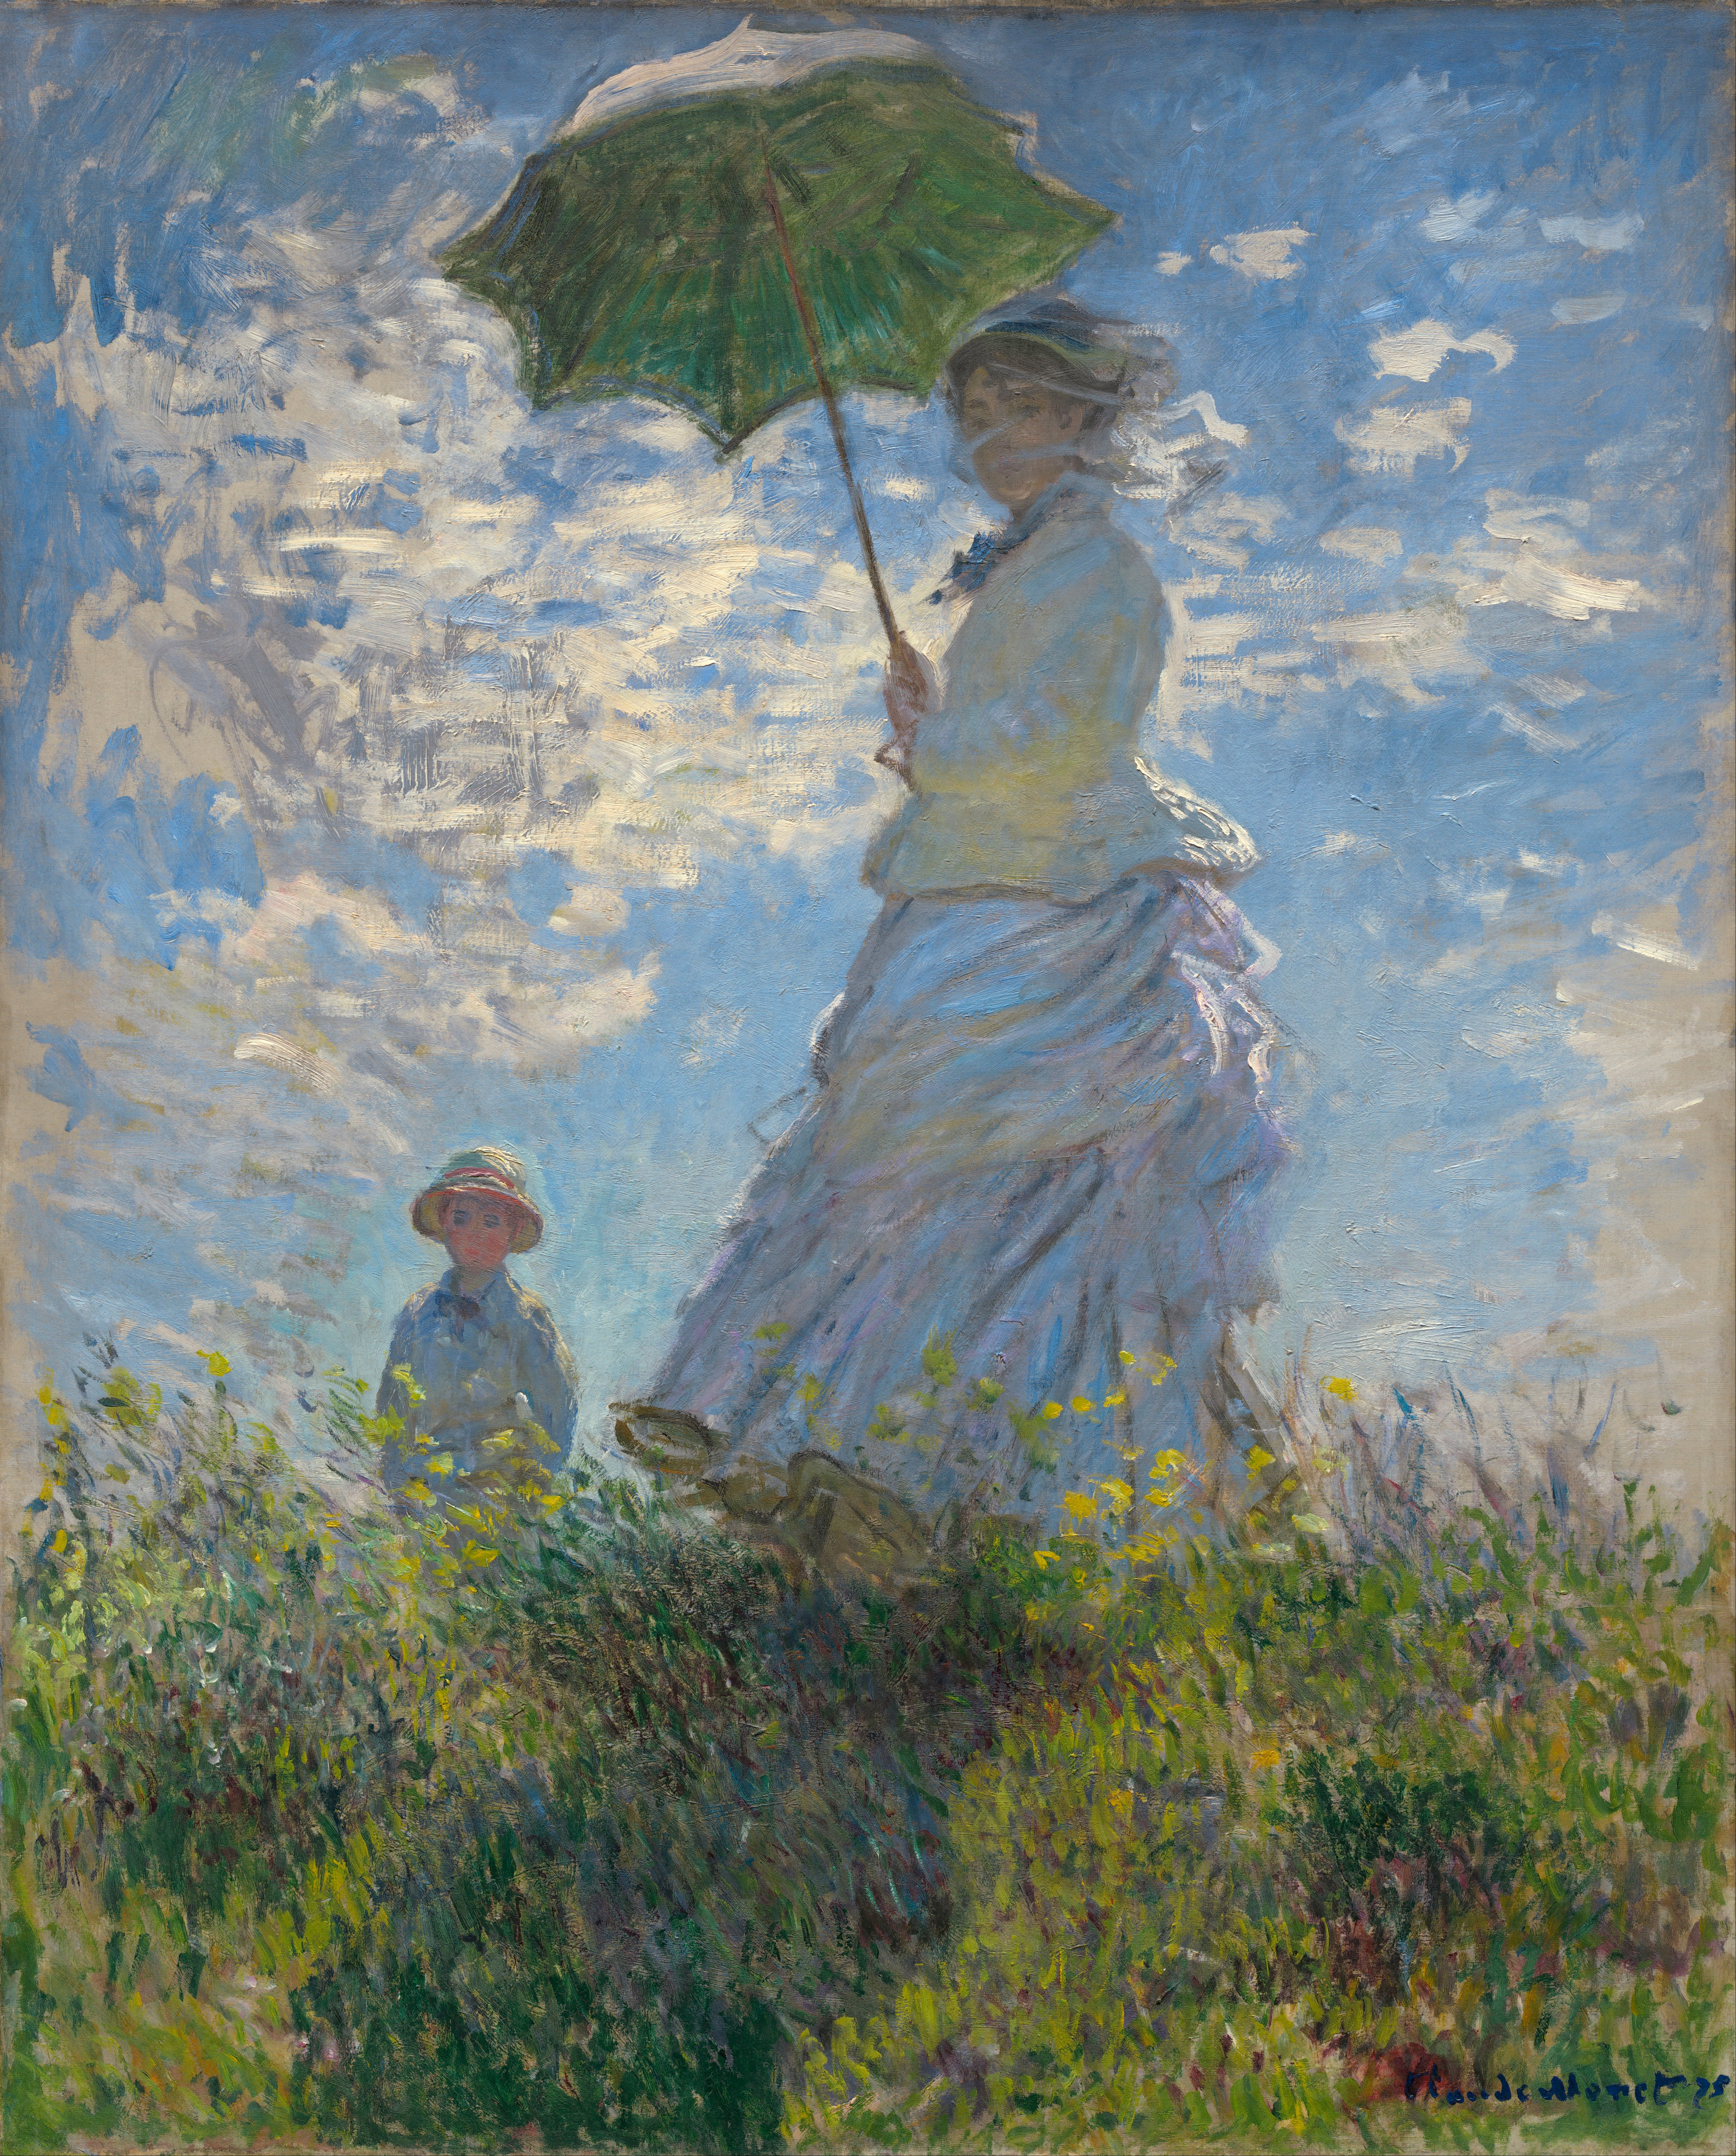 Woman_with_a_Parasol_-_Madame_Monet_and_Her_Son.jpg